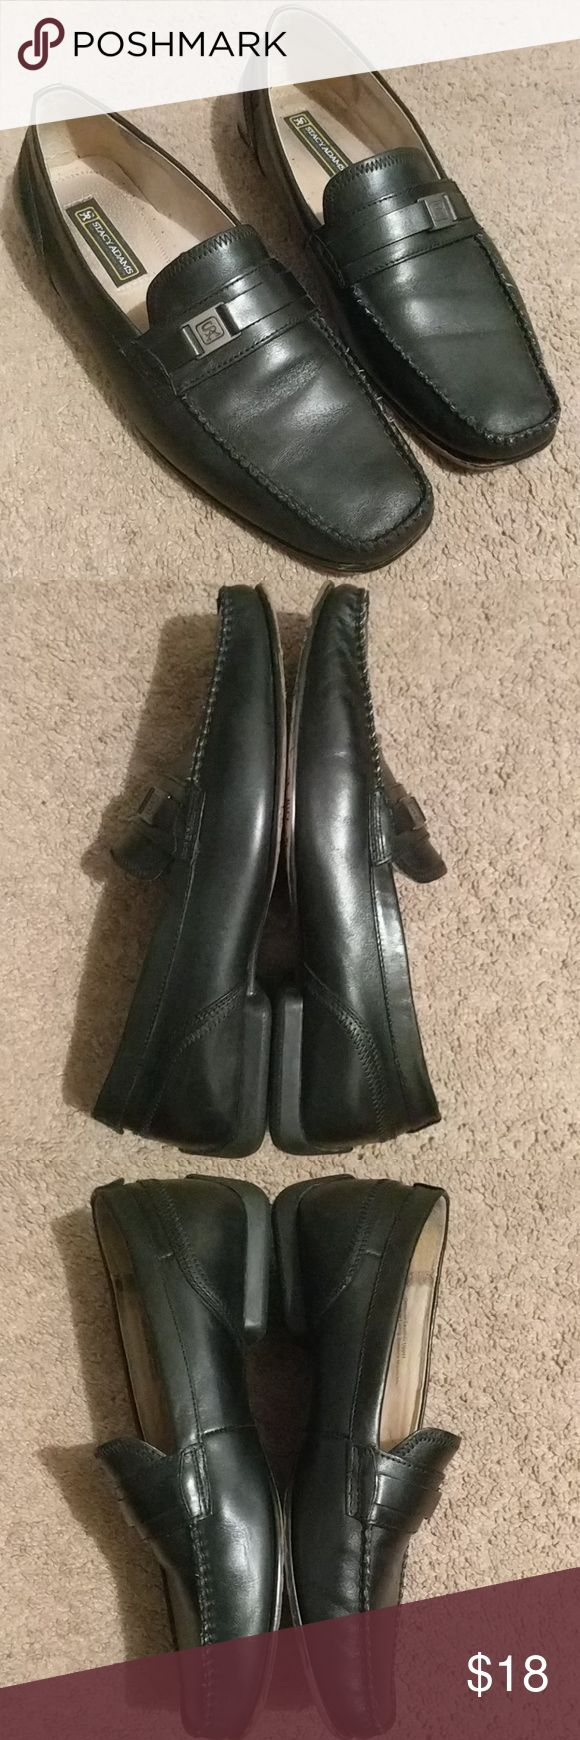 Stacy Adams Archer Men's Slip-Ons Up for sale is a previously worn pair of Stacy Adams slip-ons. They contain noticeable wear from daily use, but are still wonderful looking, comfortable shoes! Stacy Adams Shoes Loafers & Slip-Ons